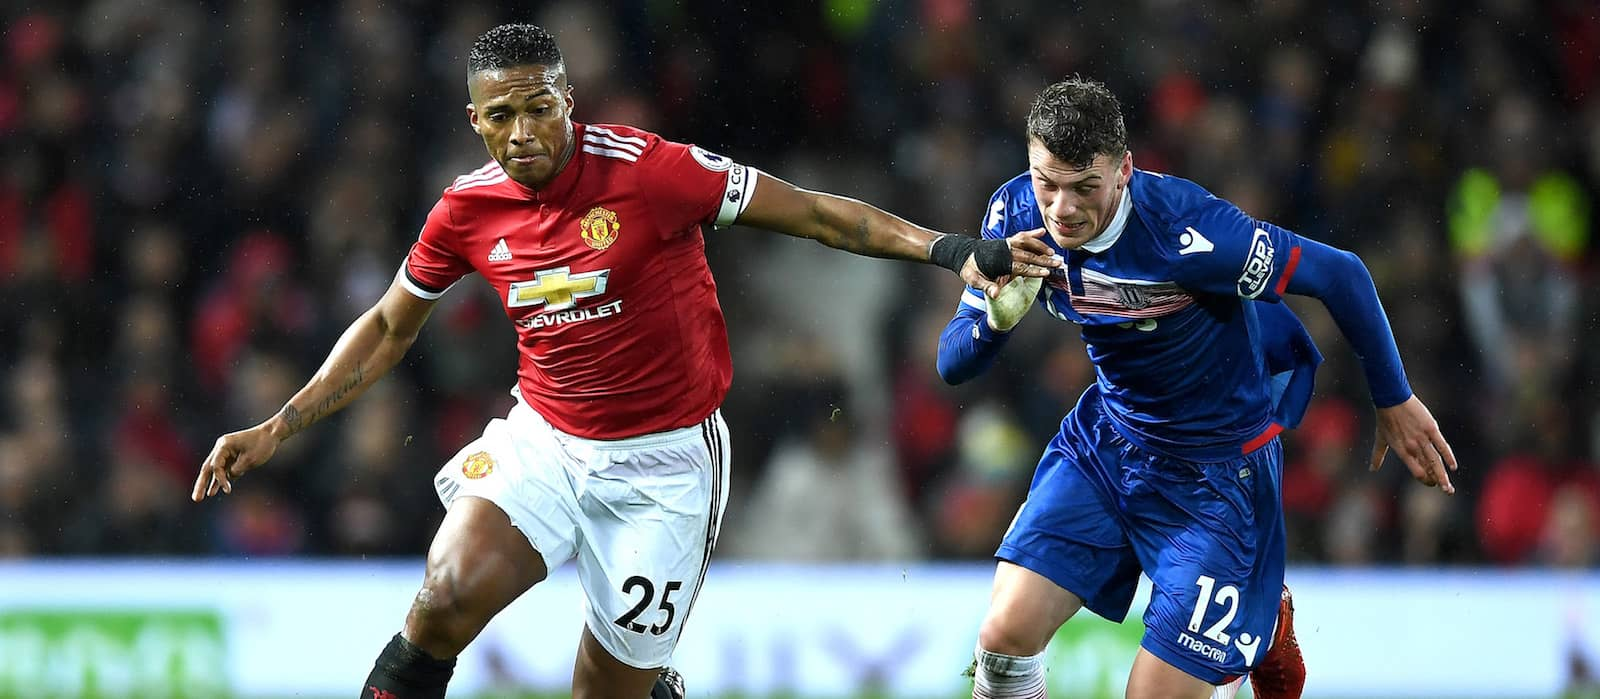 Antonio Valencia sends departing message to Manchester United fans